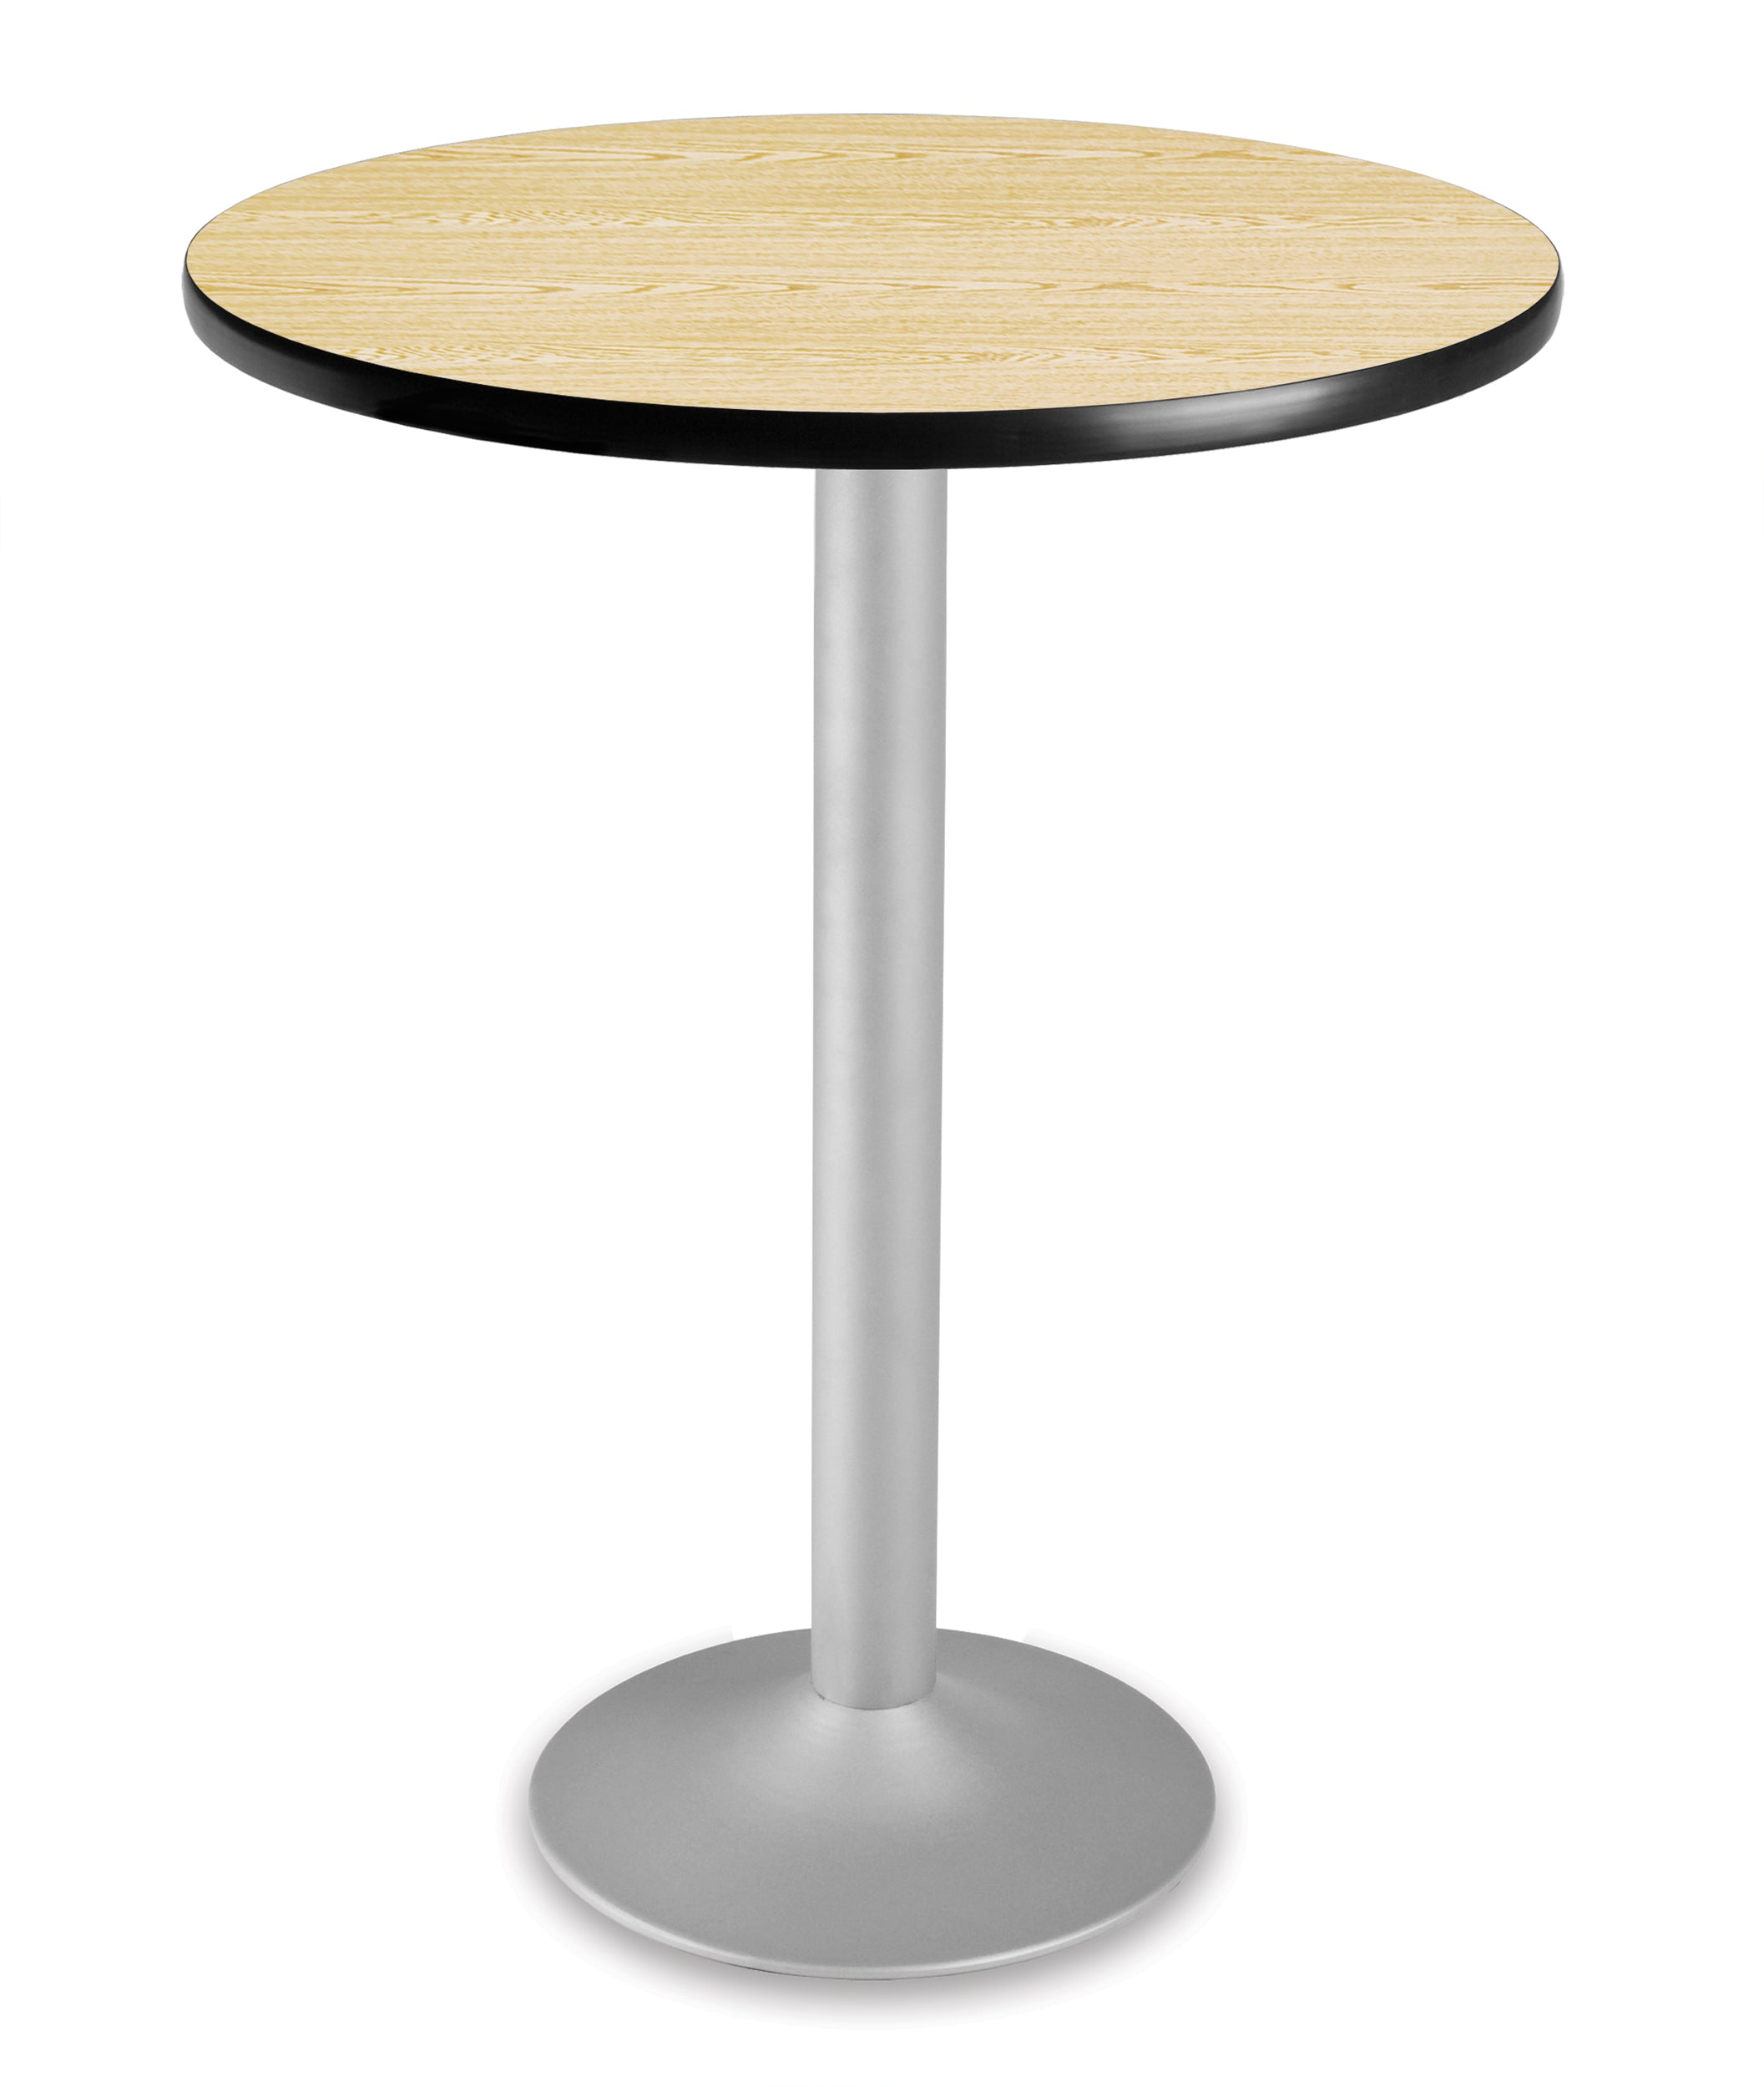 CFT30RD Round Cafe Height Folding Table with Pedestal Base 30 Inch